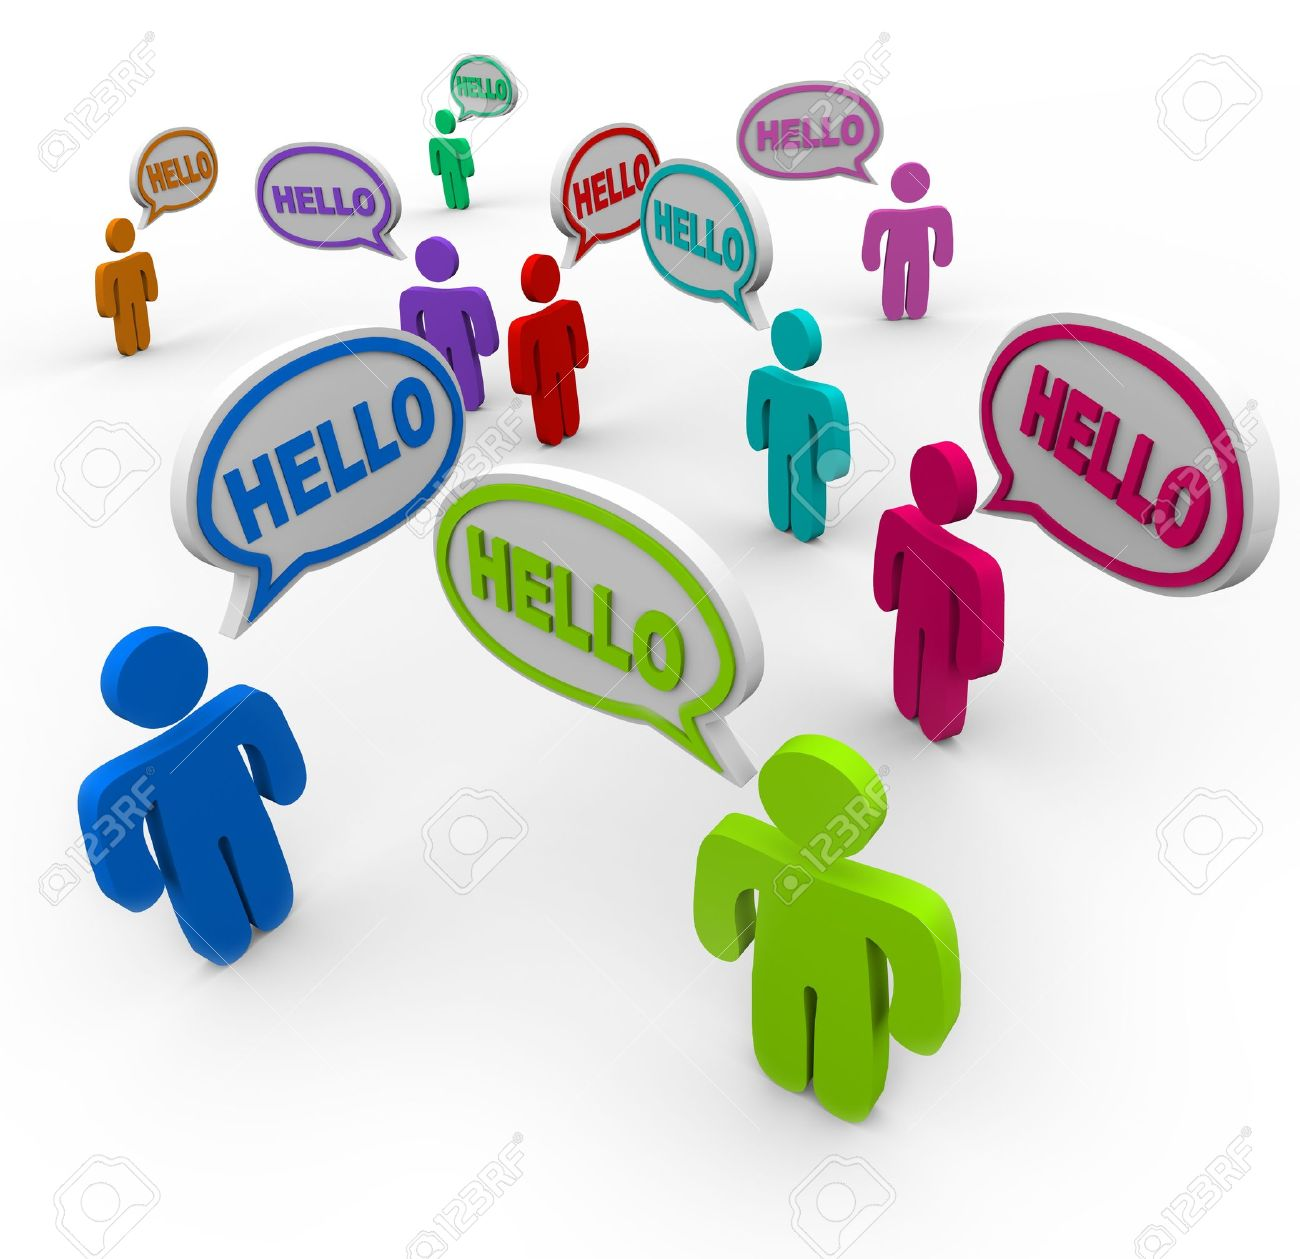 Many people of different colors representing various cultures speaking and greeting each other saying hello in speech clouds or bubbles Stock Photo - 11049231